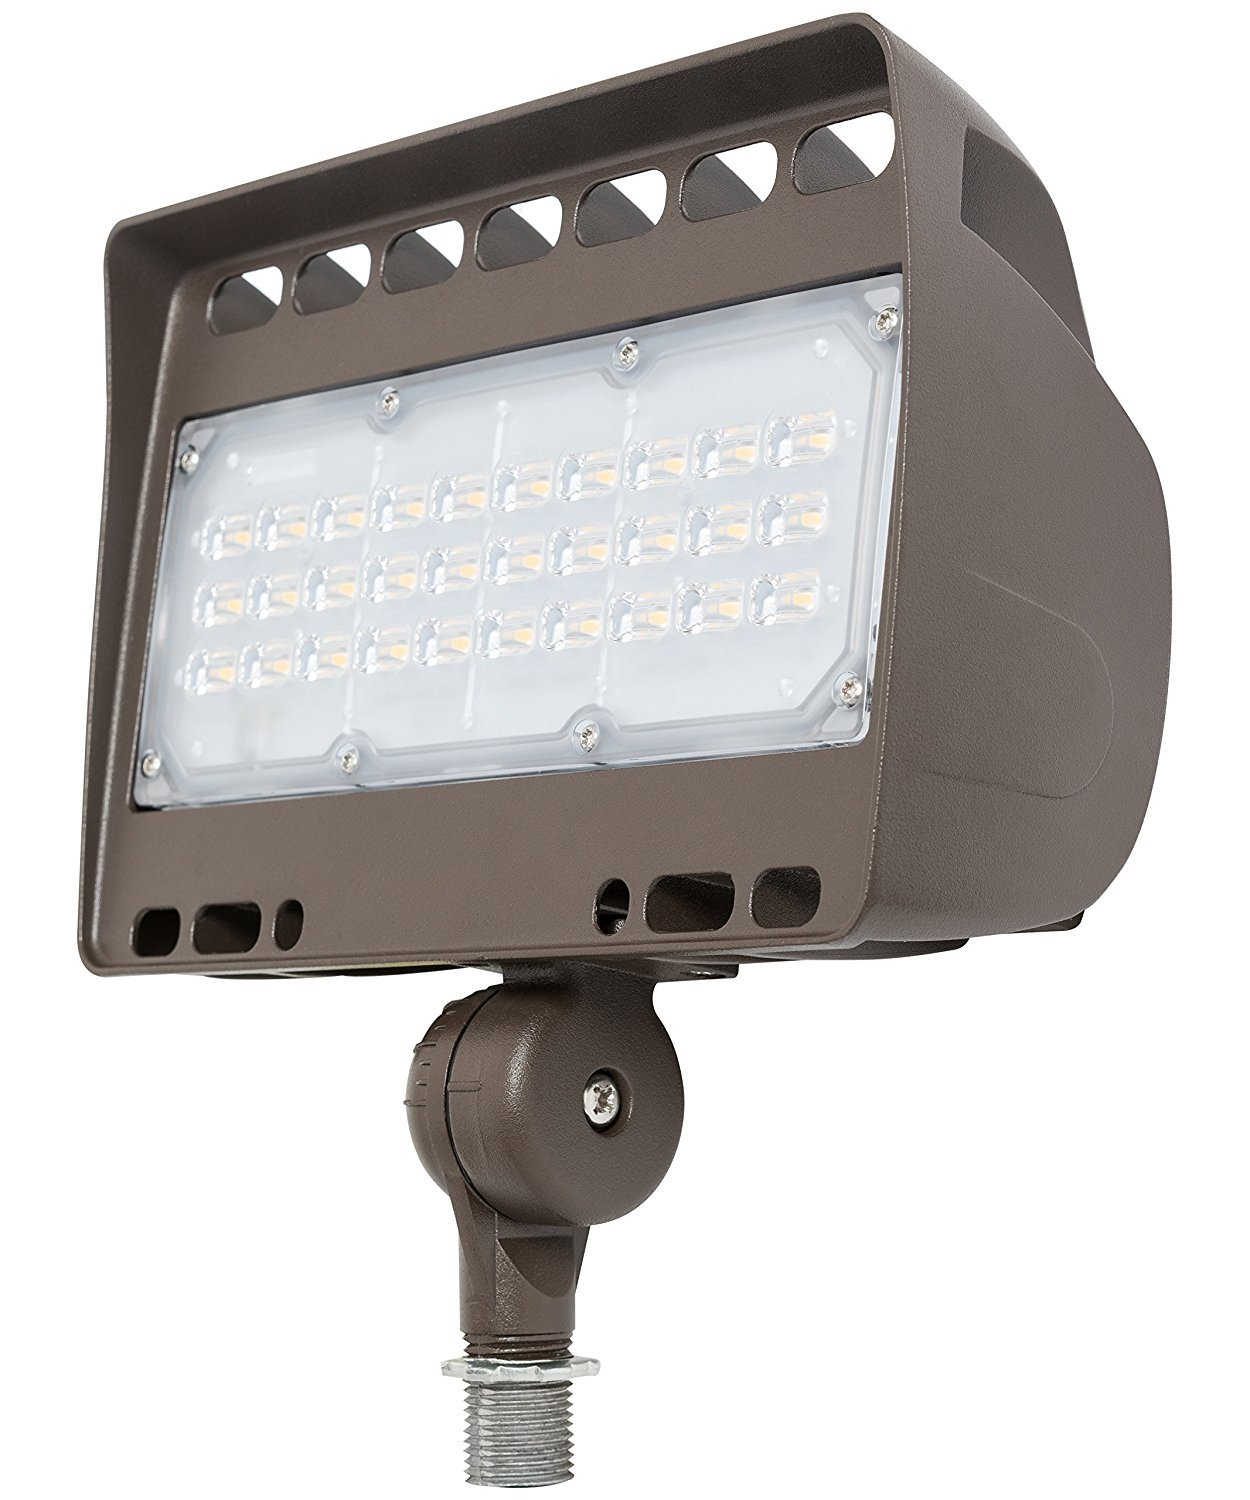 Westgate lighting led outdoor flood light knuckle mount security picture 7 of 7 arubaitofo Images